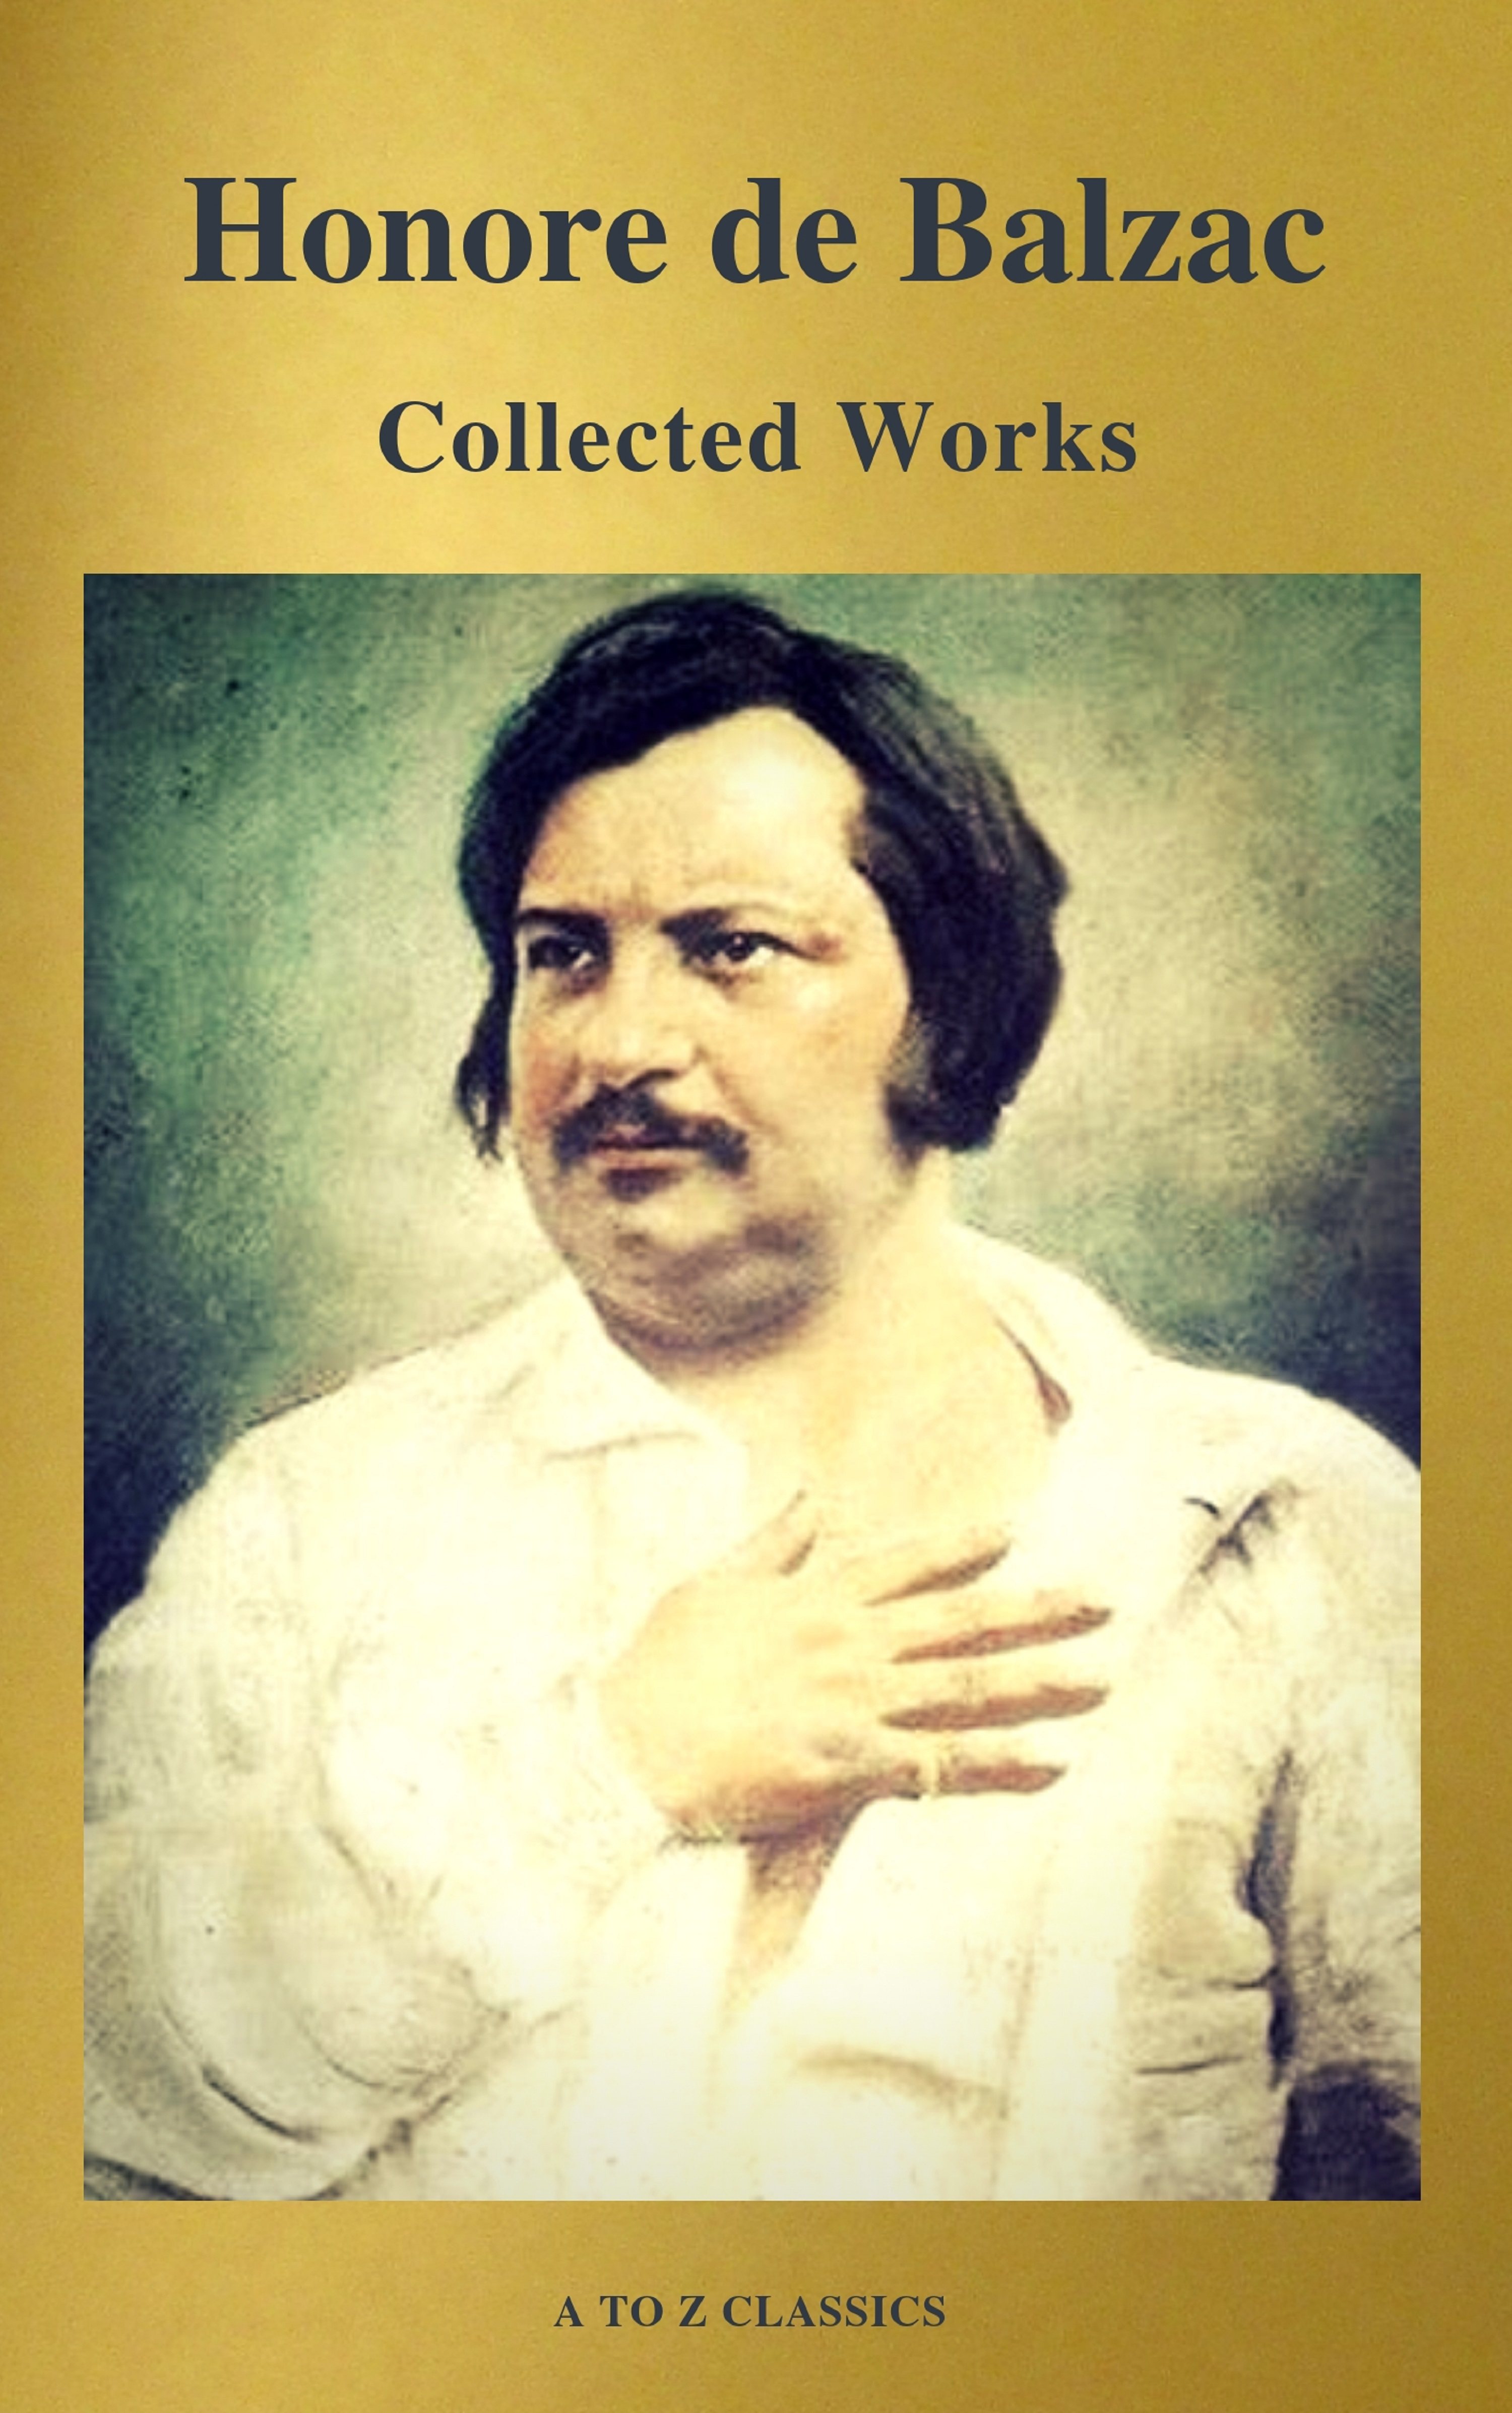 collected works of honore de balzac with the complete human comedy a to z classics